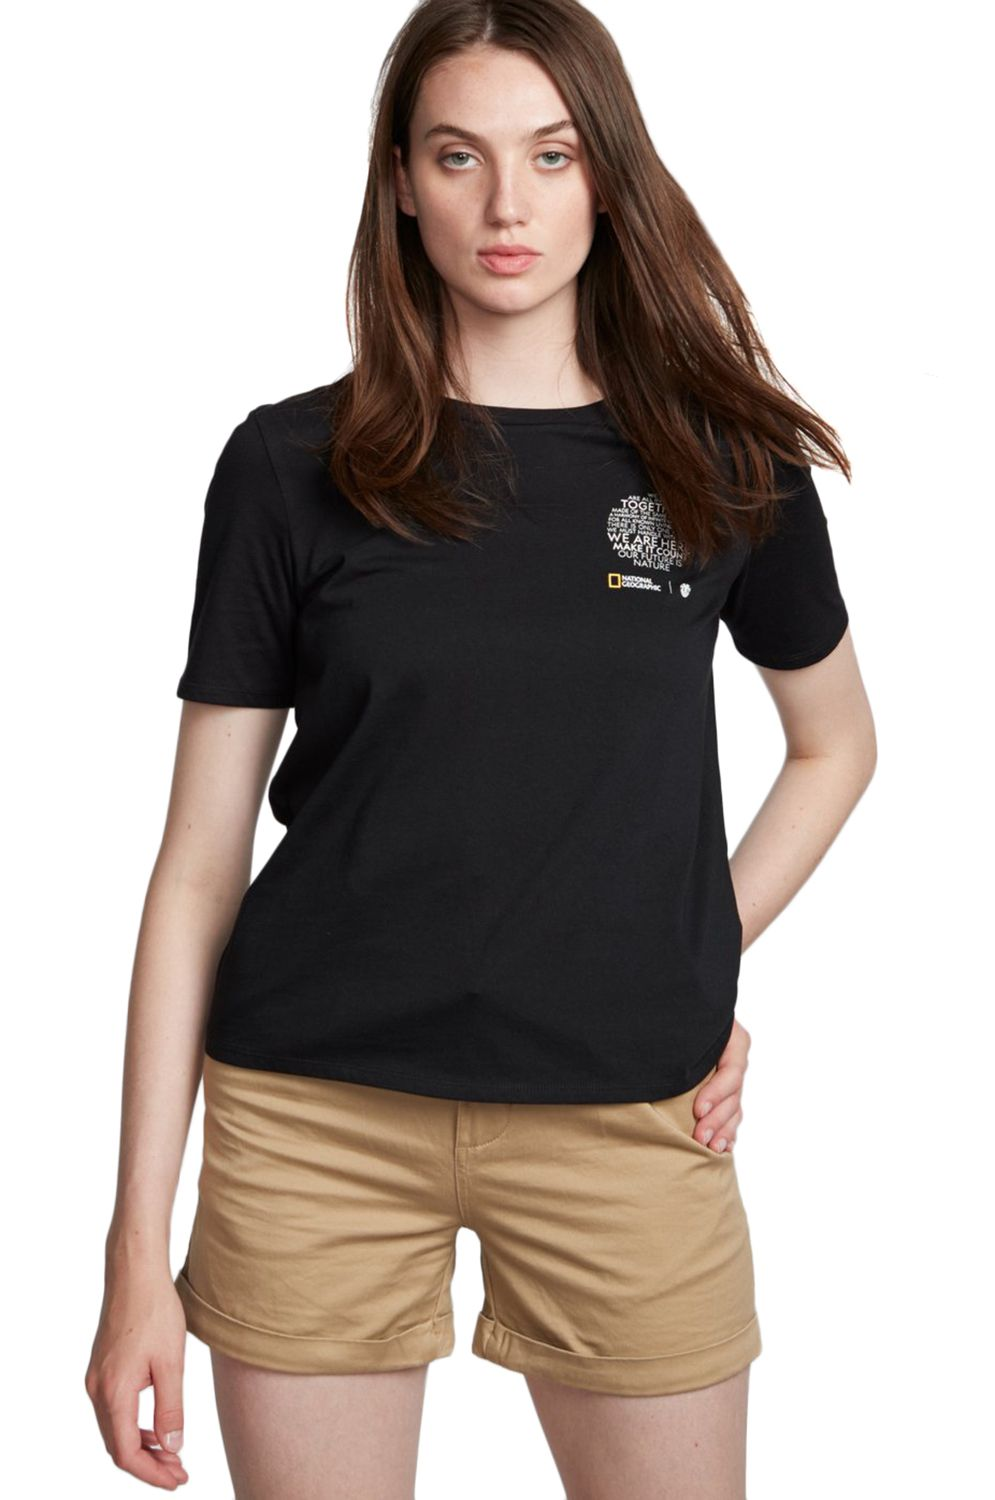 T-Shirt Element NAT GEO CR NATIONAL GEOGRAPHIC Black